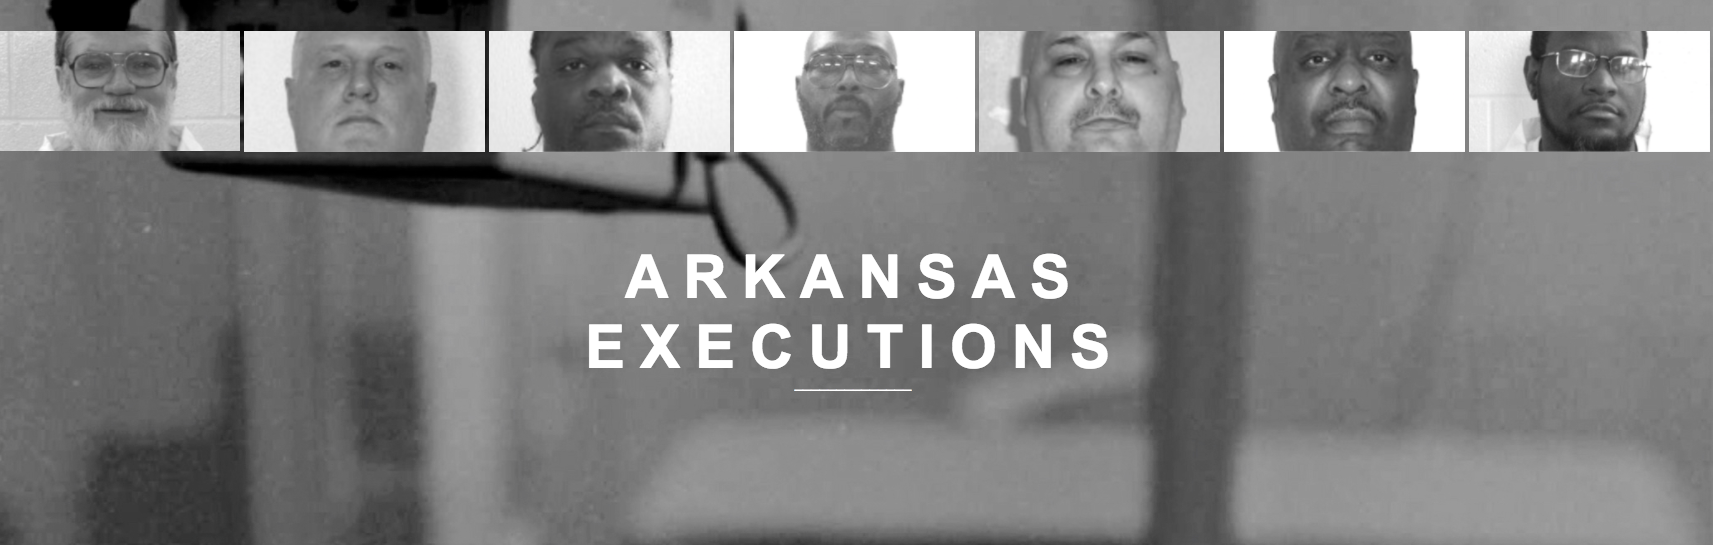 Arkansas executes fourth inmate in 11 days